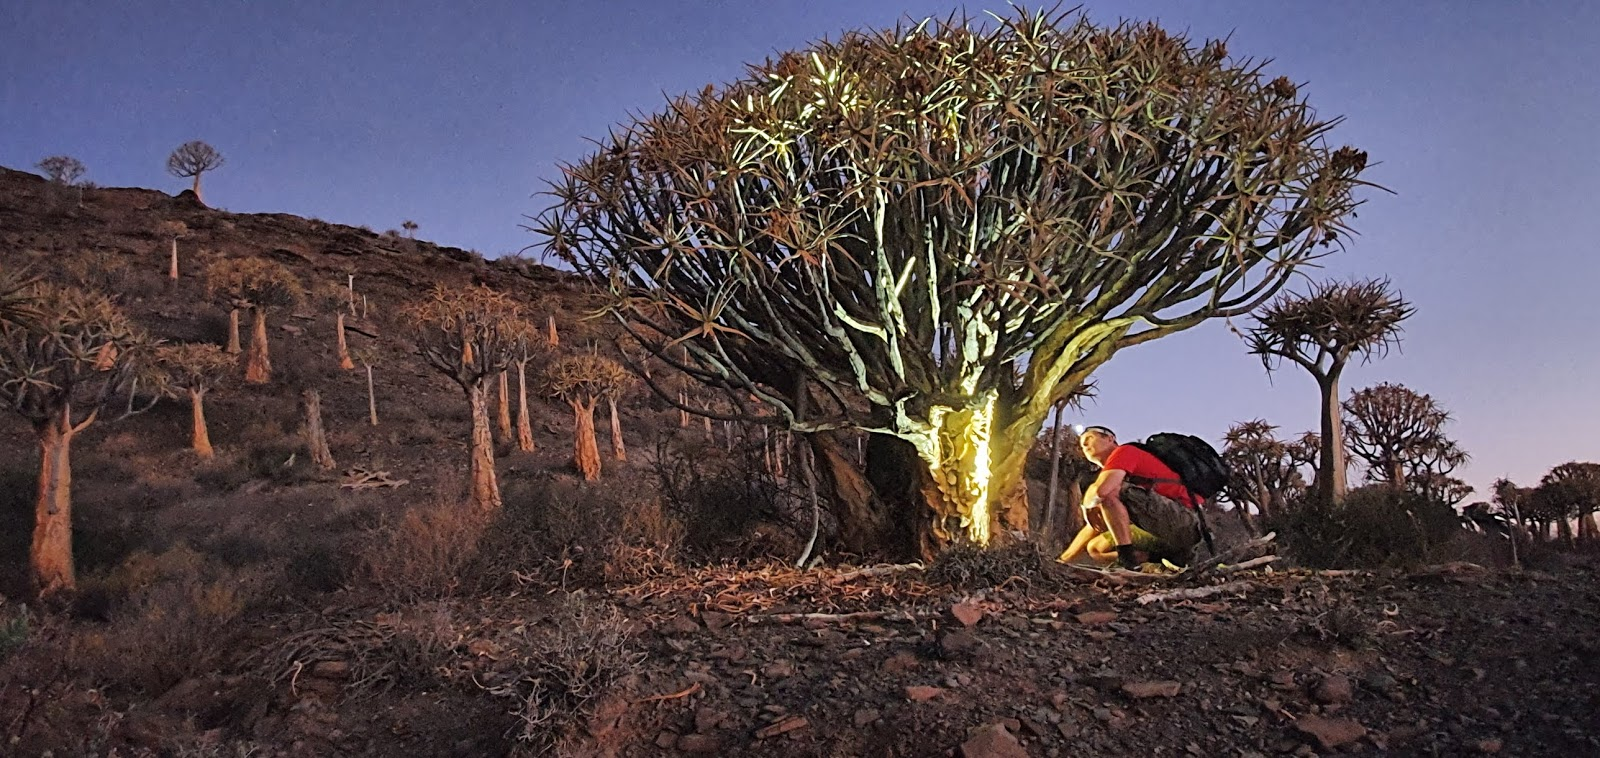 Gannabos, Quiver tree forest, Nieuwoudtville, Alex Aitkenhead, South Africa, Northern Cape, West Coast Flowers, Bulb Capital of the world, Aloe Dichotoma, Star Trails, Celestial Photography, African sunset, African Desert, Star Photography,